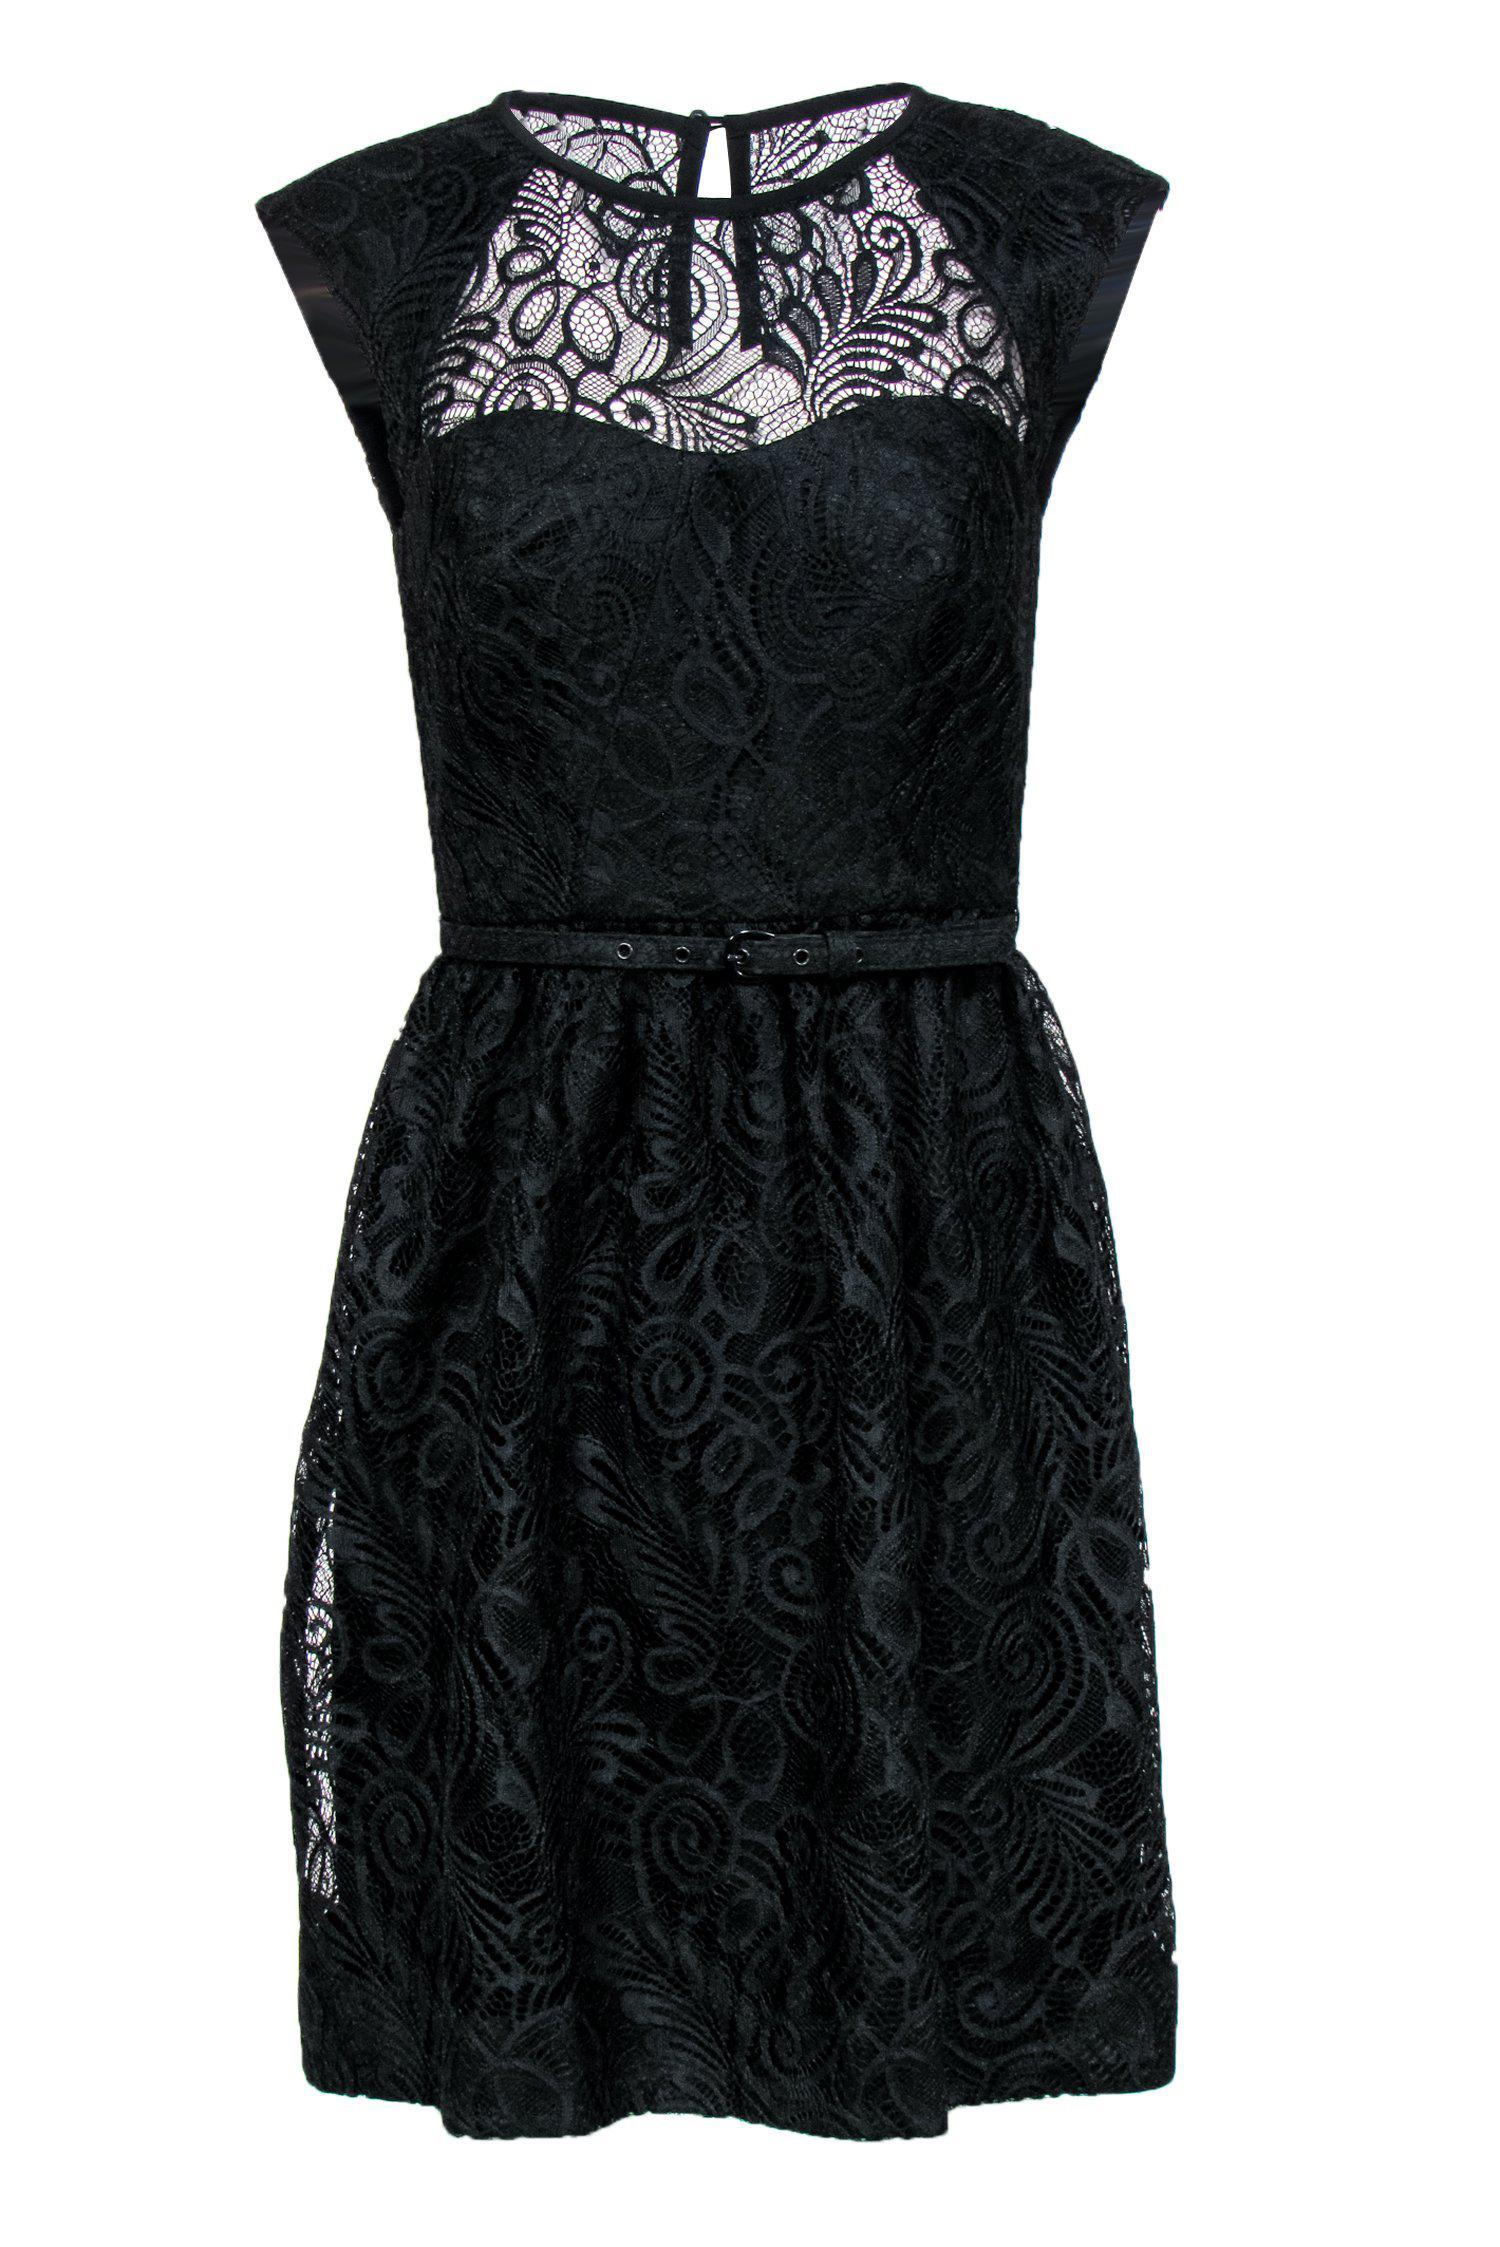 Trina Turk - Black Lace A-Line Dress w/ Belt Sz 2